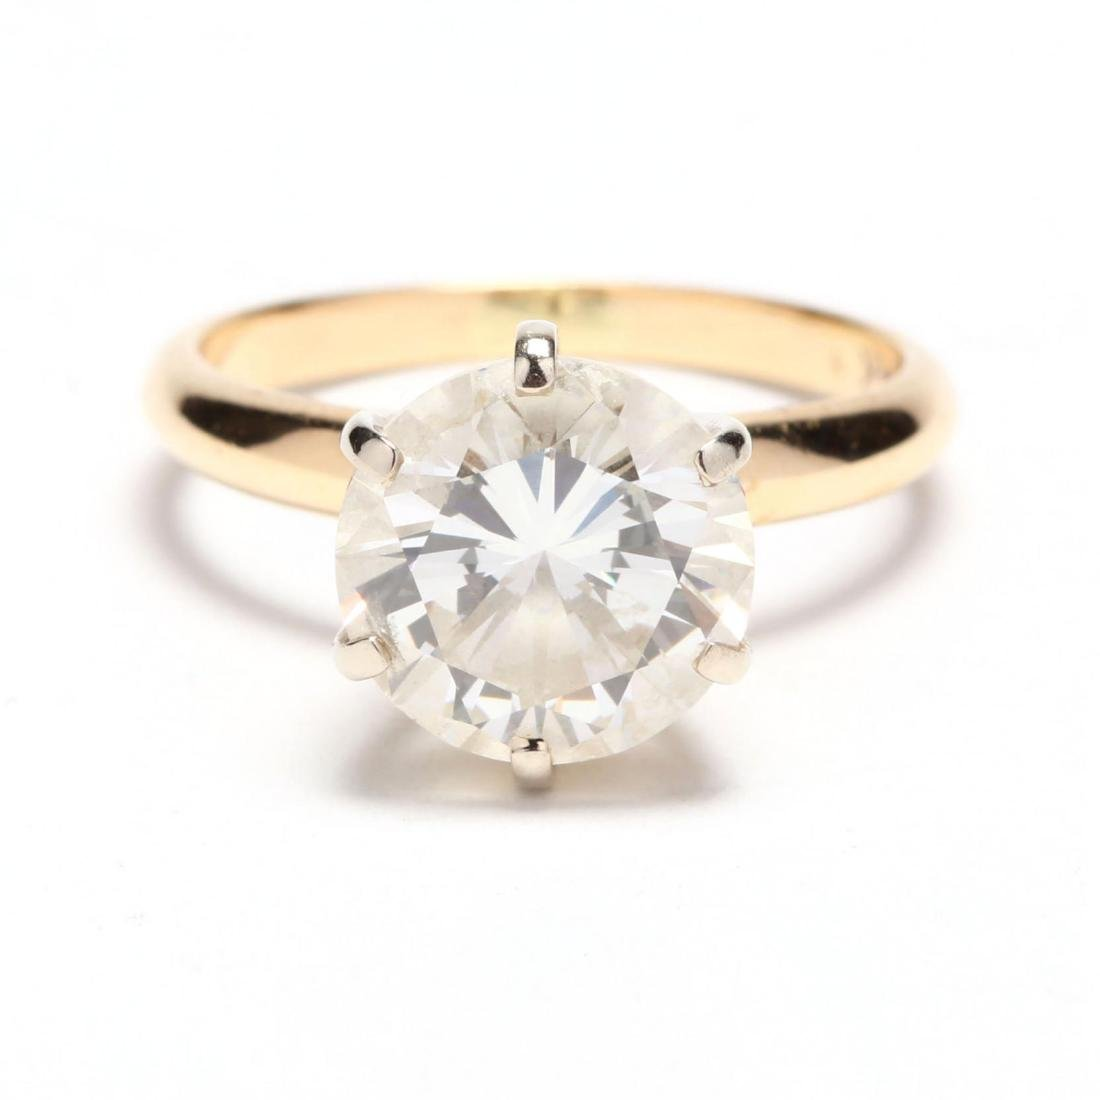 Unmounted Round Brilliant Cut Diamond and 14KT Gold